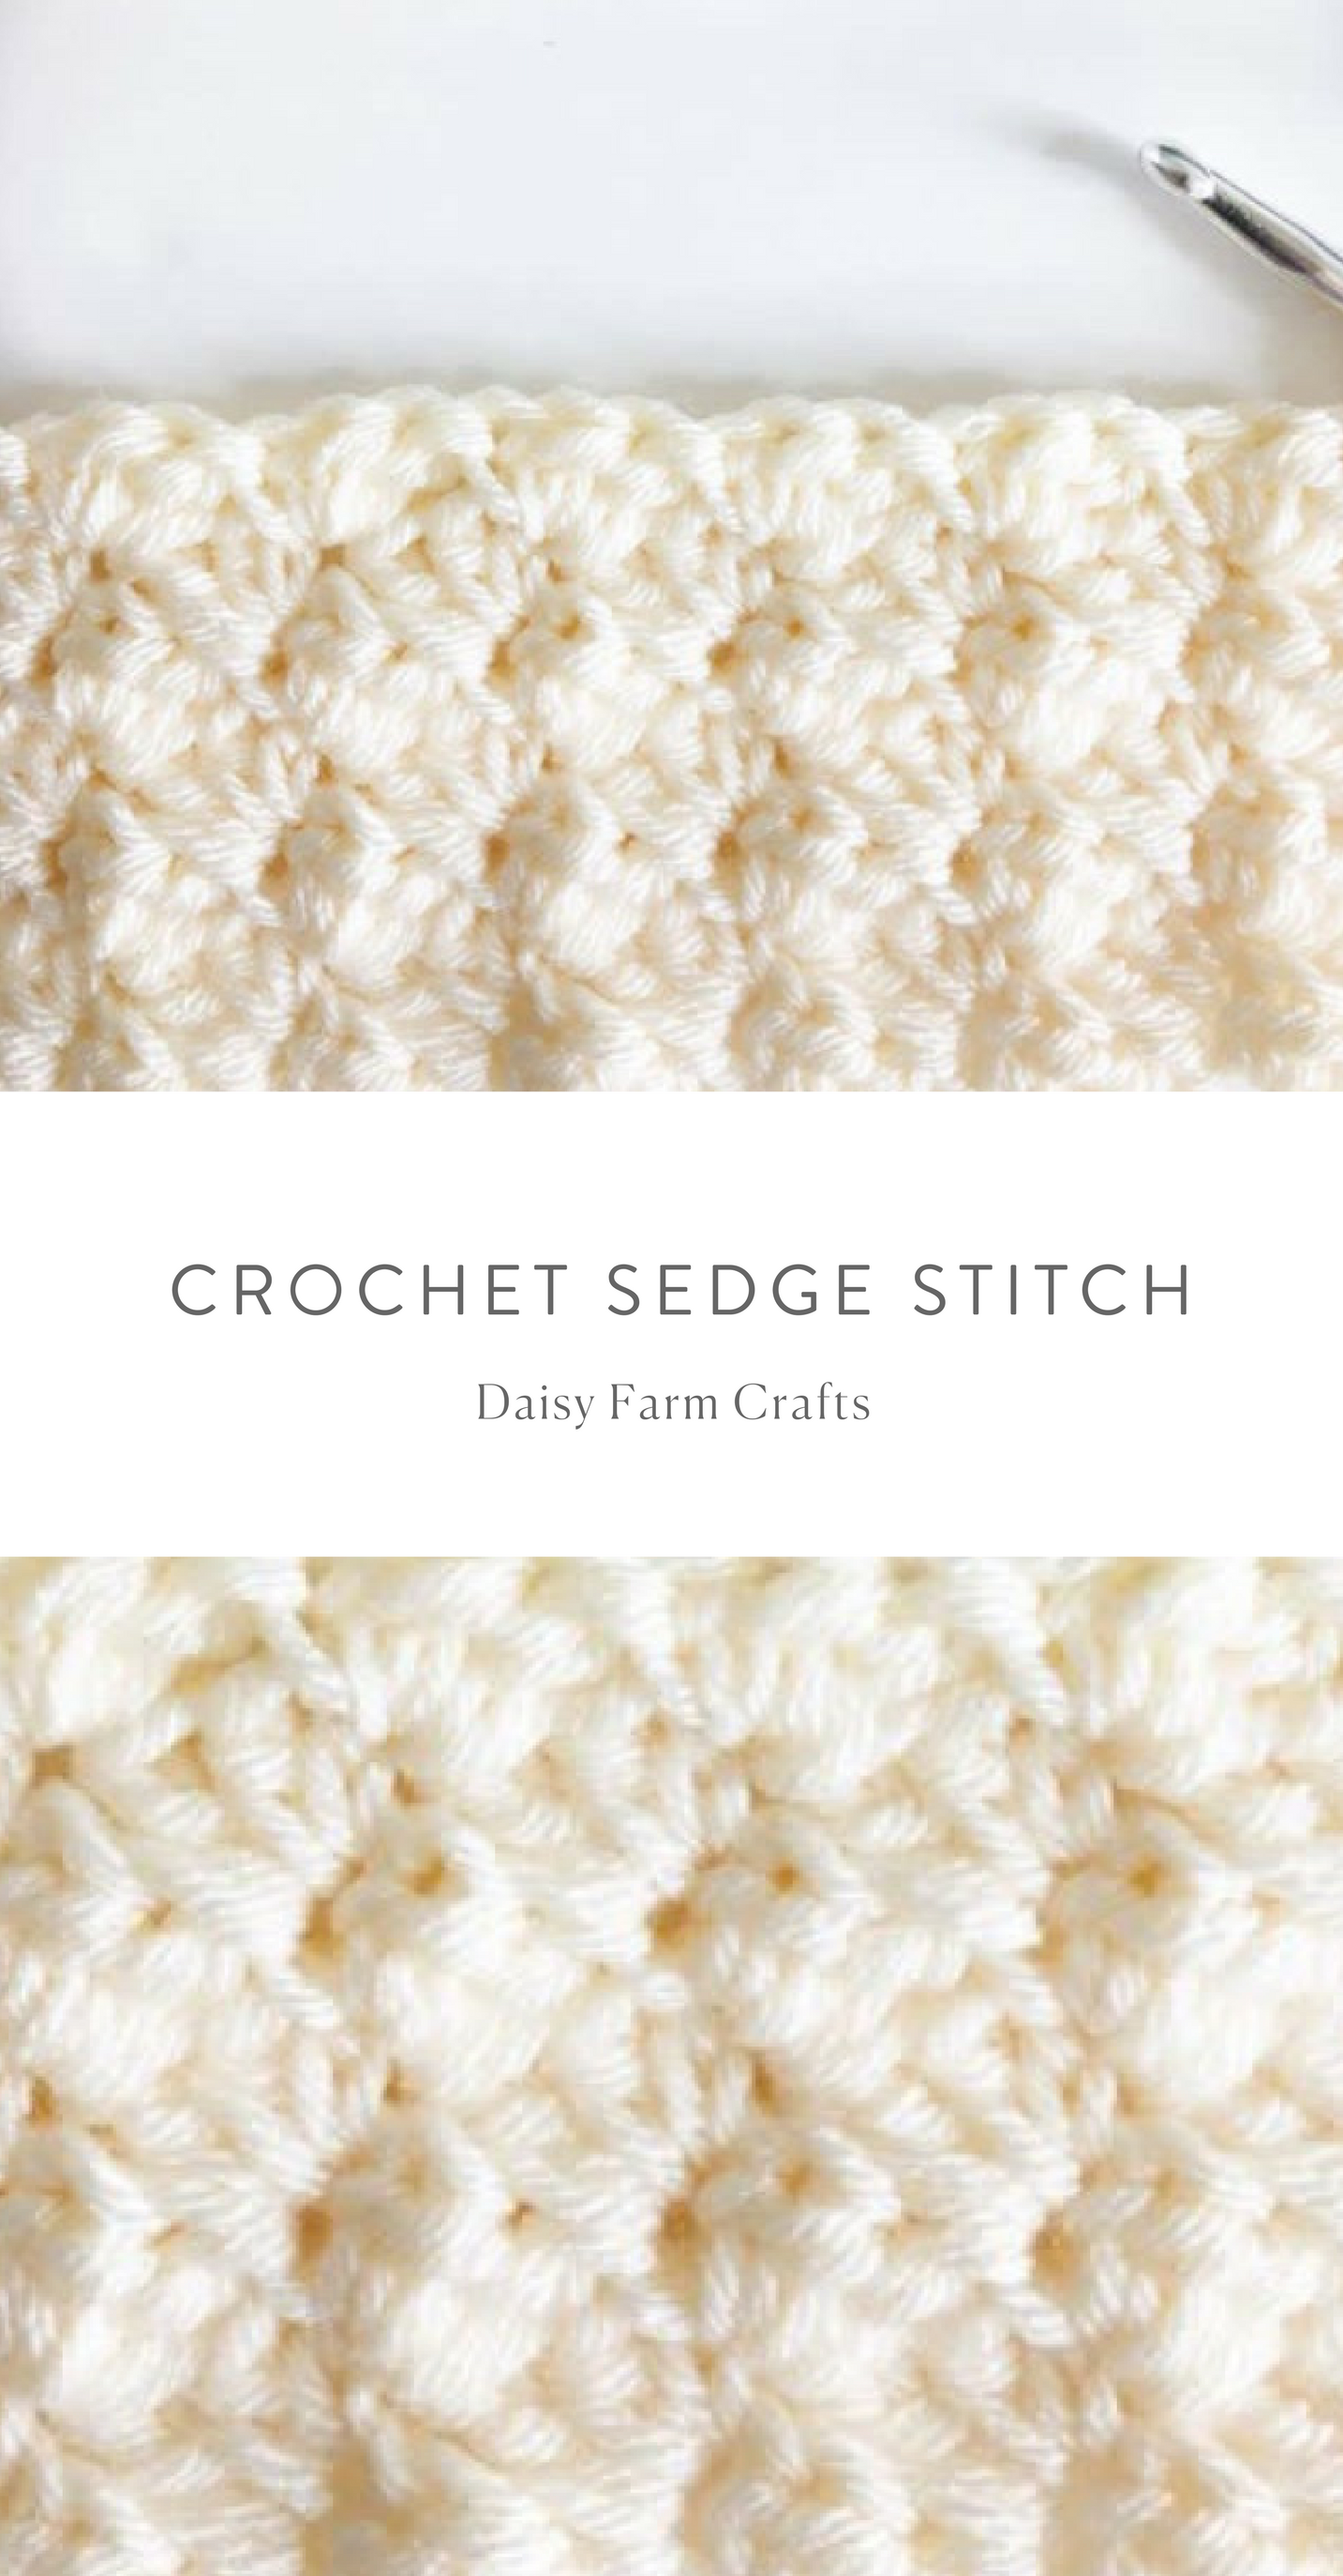 Free Pattern - Crochet Sedge Stitch | Crochet | Pinterest ...